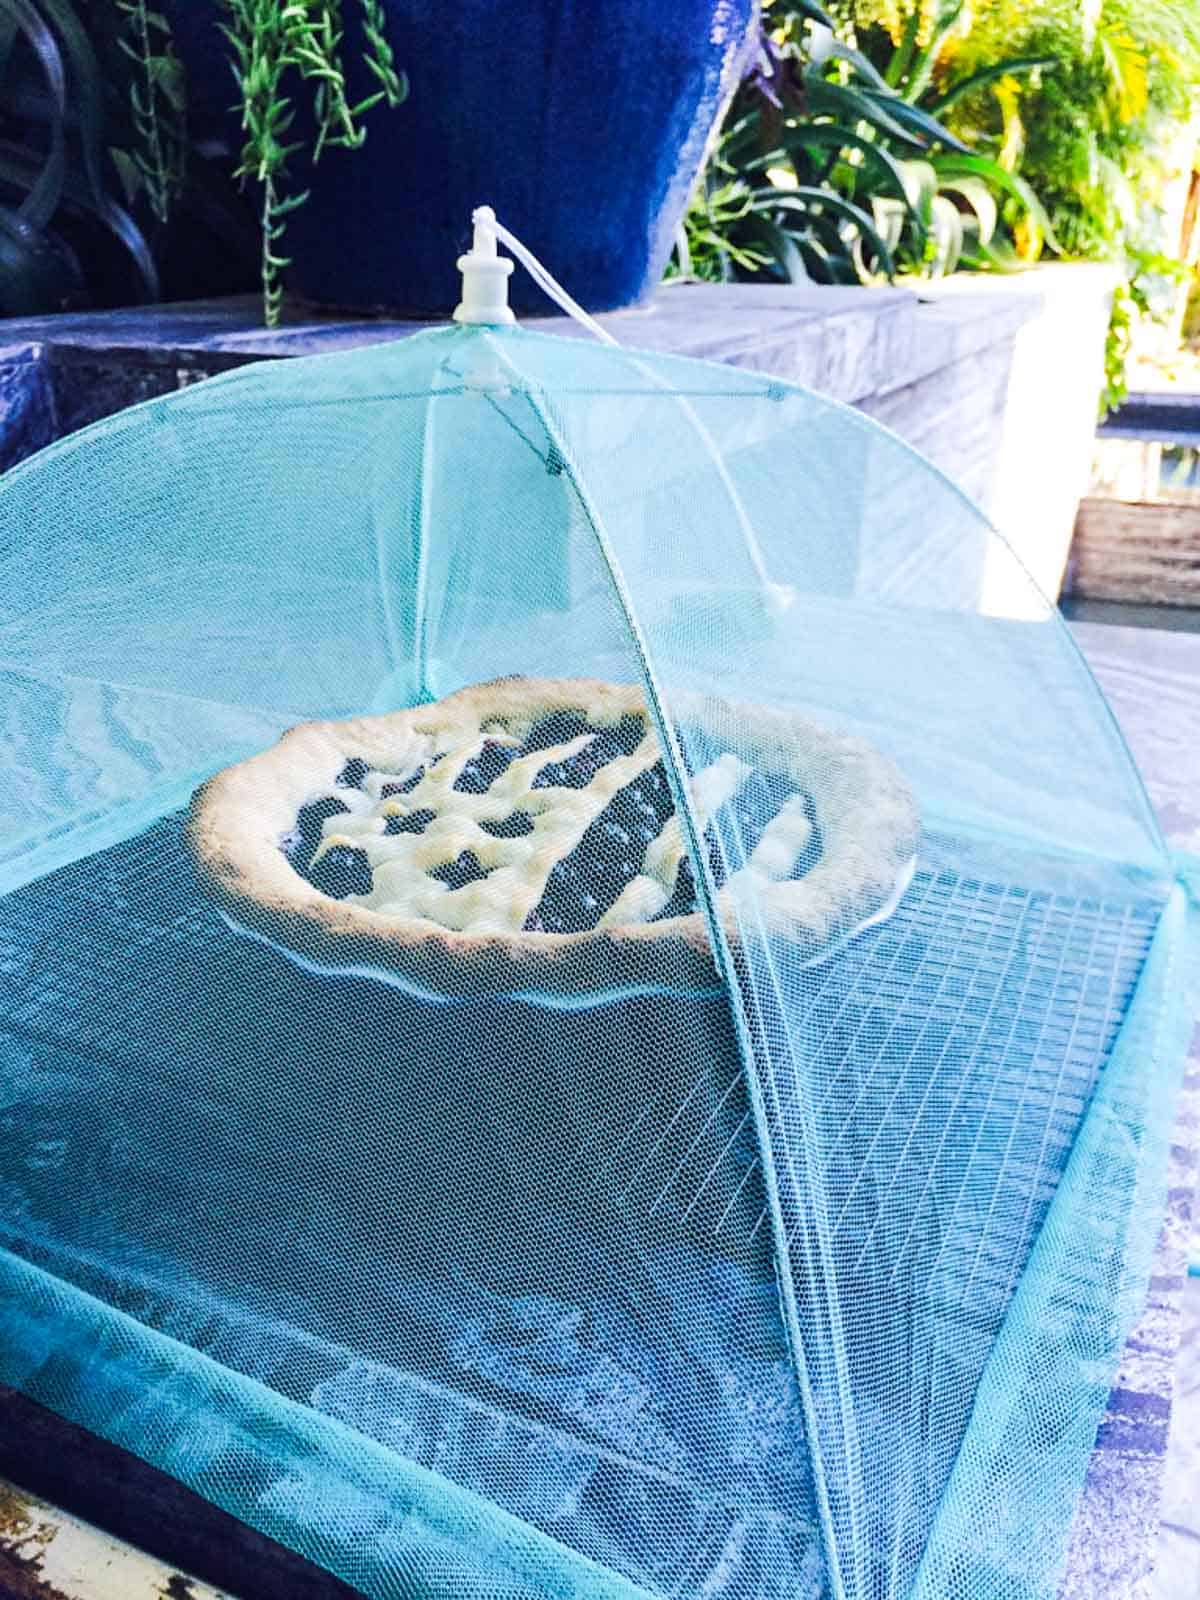 A freshly baked blueberry pie with a flag shaped crust with a food tent over it cooling.